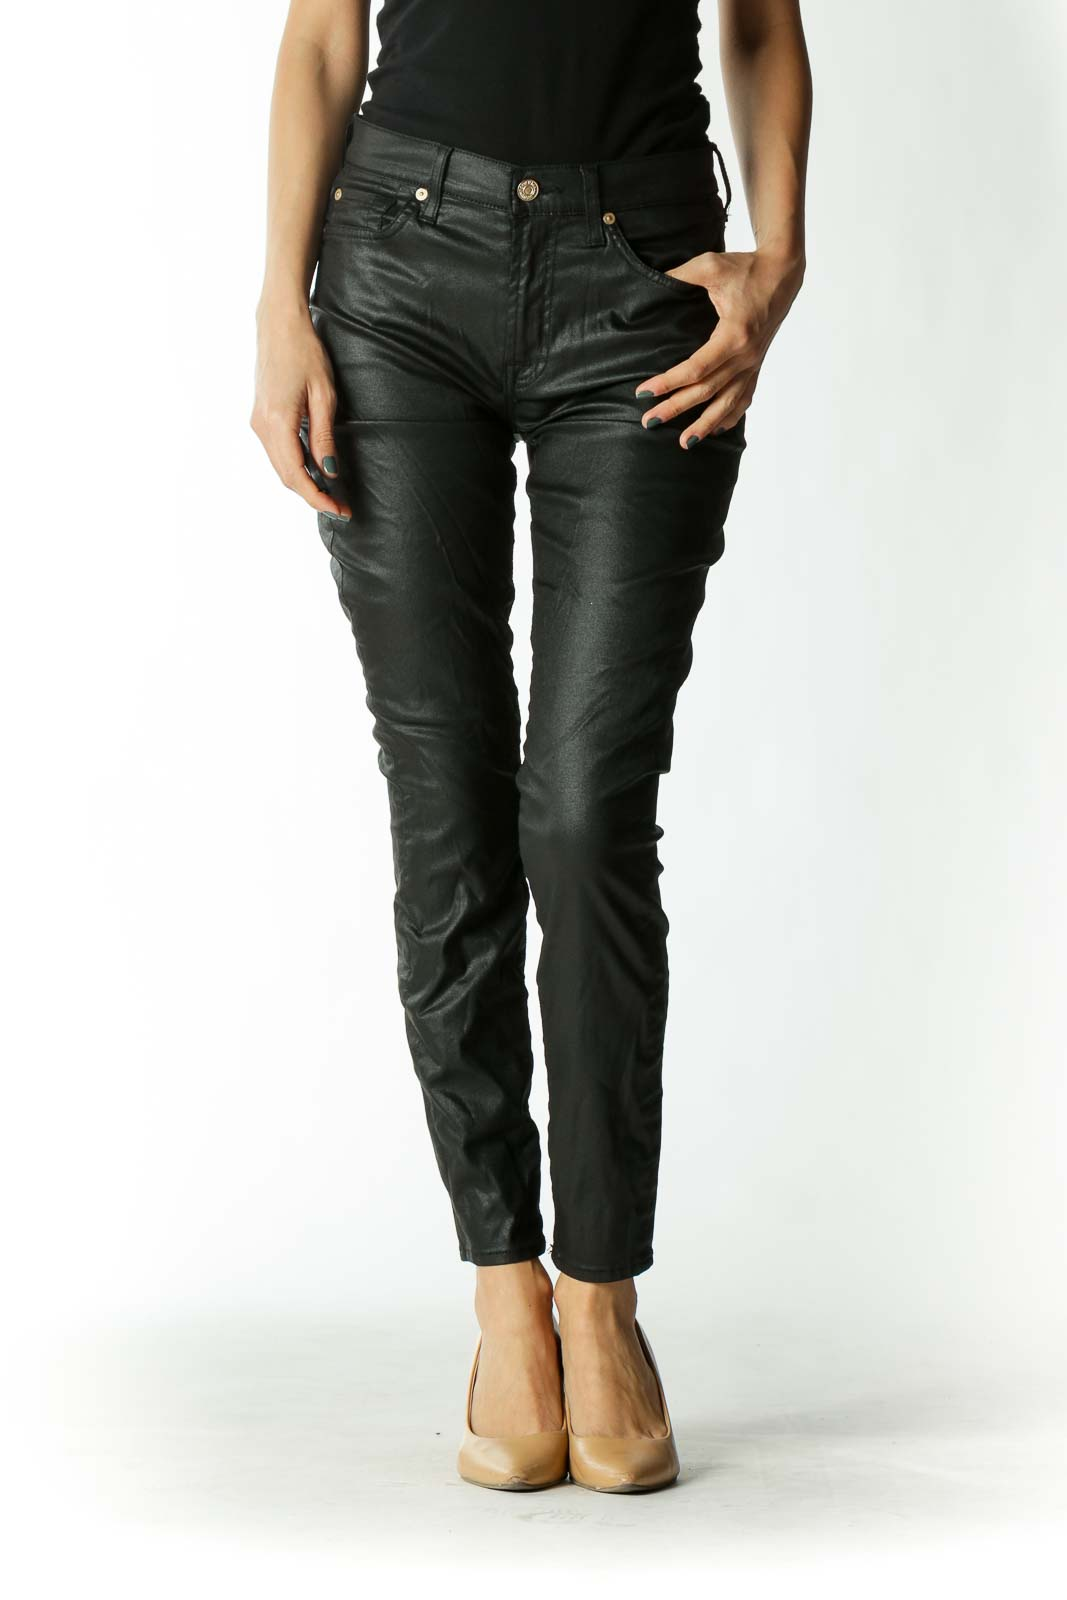 Black Waxed Mid-Rise Skinny Jeans with Gold Embellishments Front